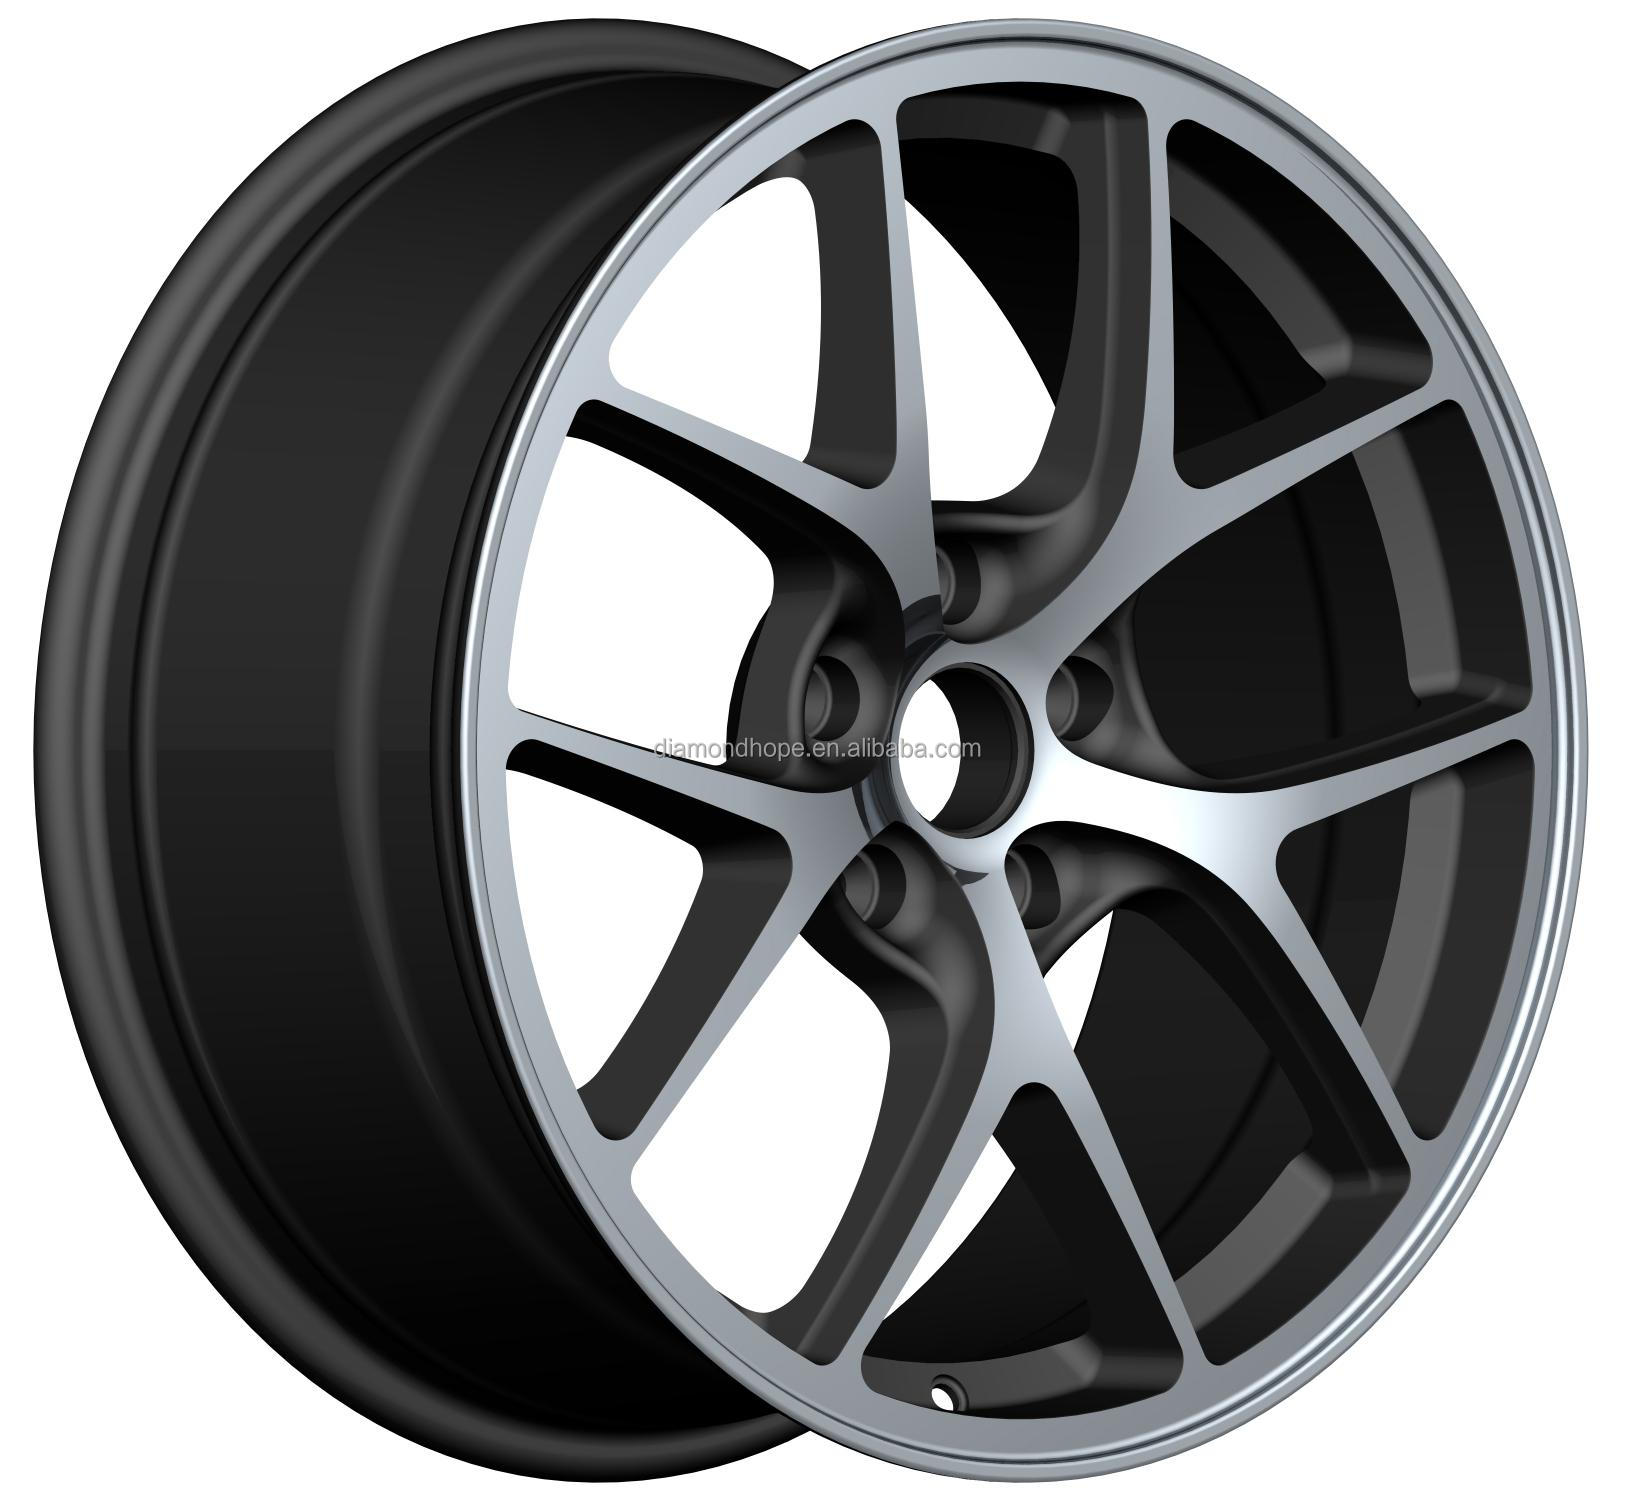 New!hot-seller Black Car Alloy Wheel Rims Export To The World 19 ...